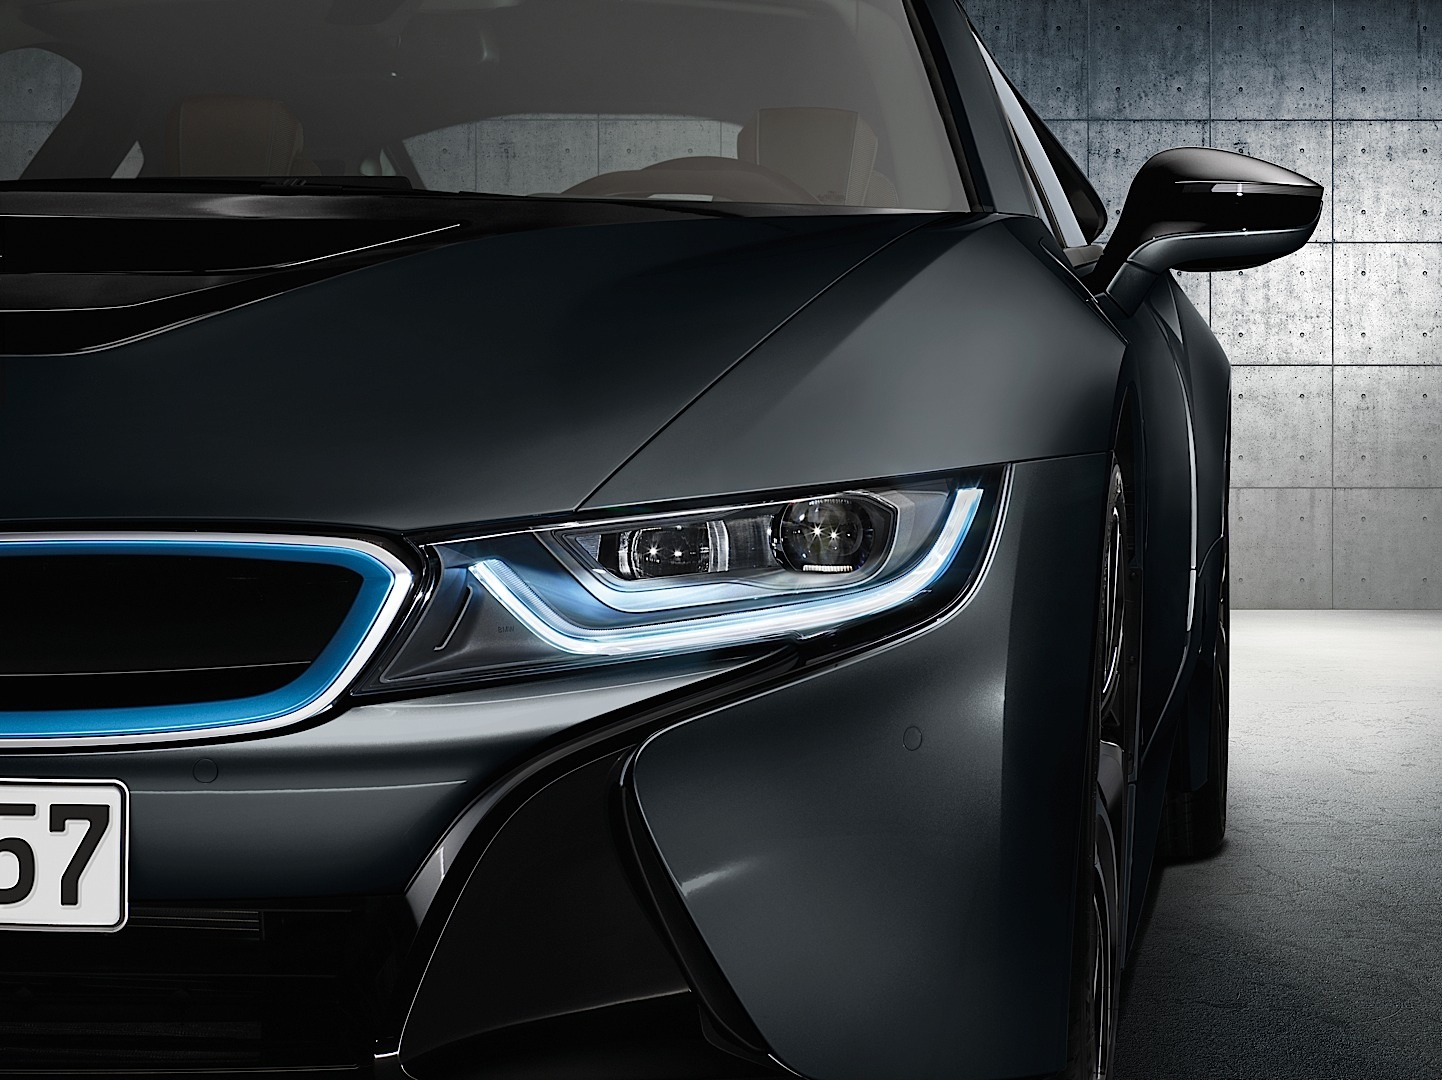 Bmw I8 Is The World S First Car To Have Laser Headlights Autoevolution